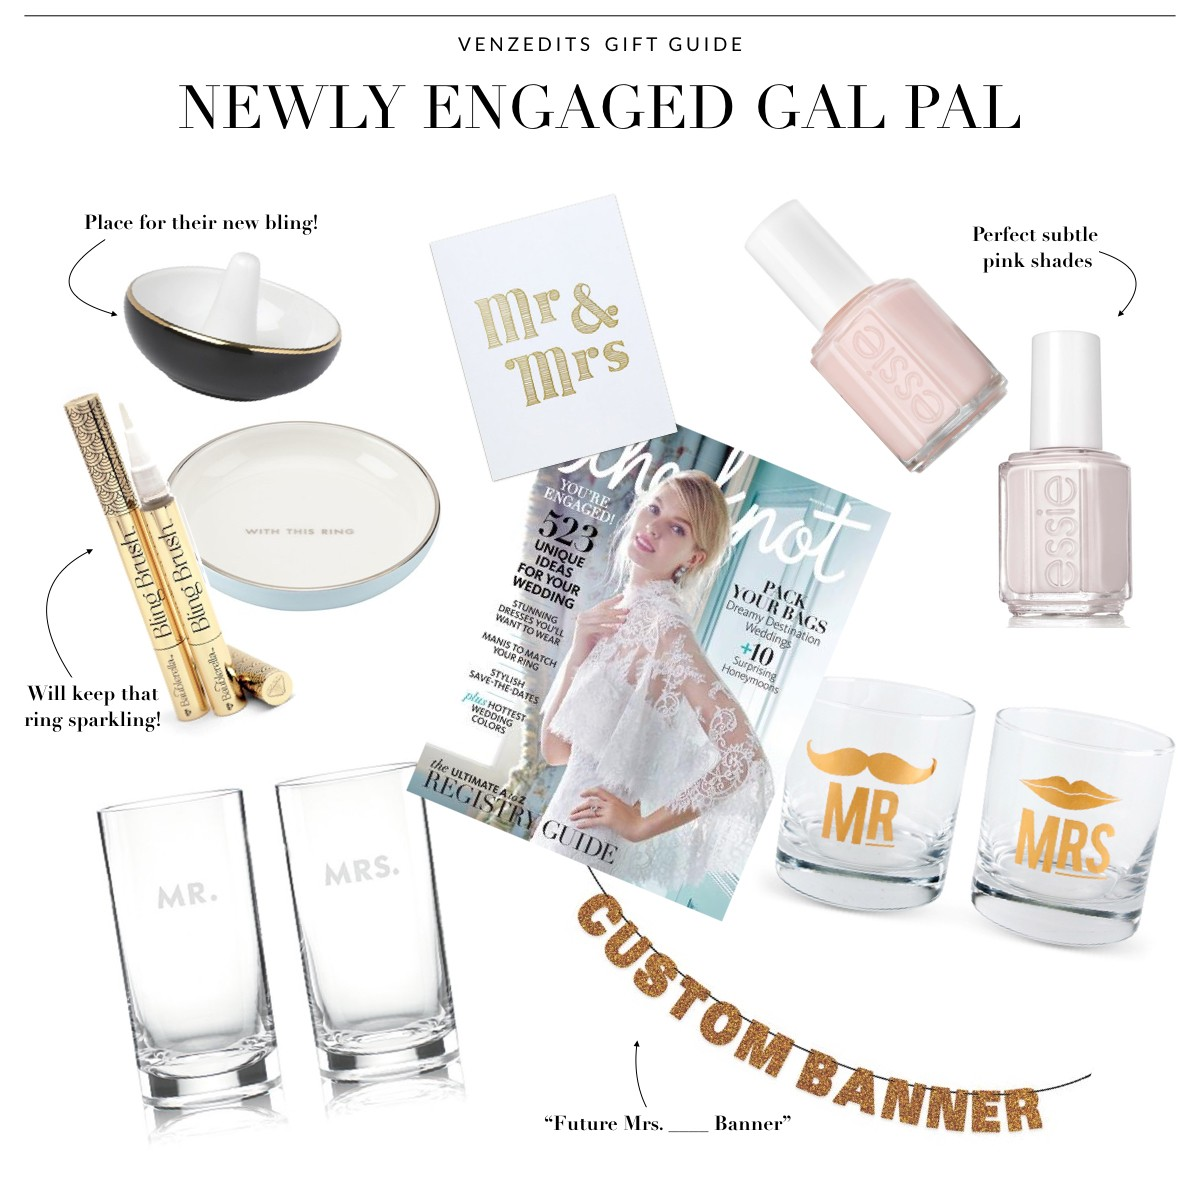 It Is Engagement Season With Many Of My Friends Getting Engaged I Thought Would Put Together A Gift Guide Fun Gifts For The Bride To Be